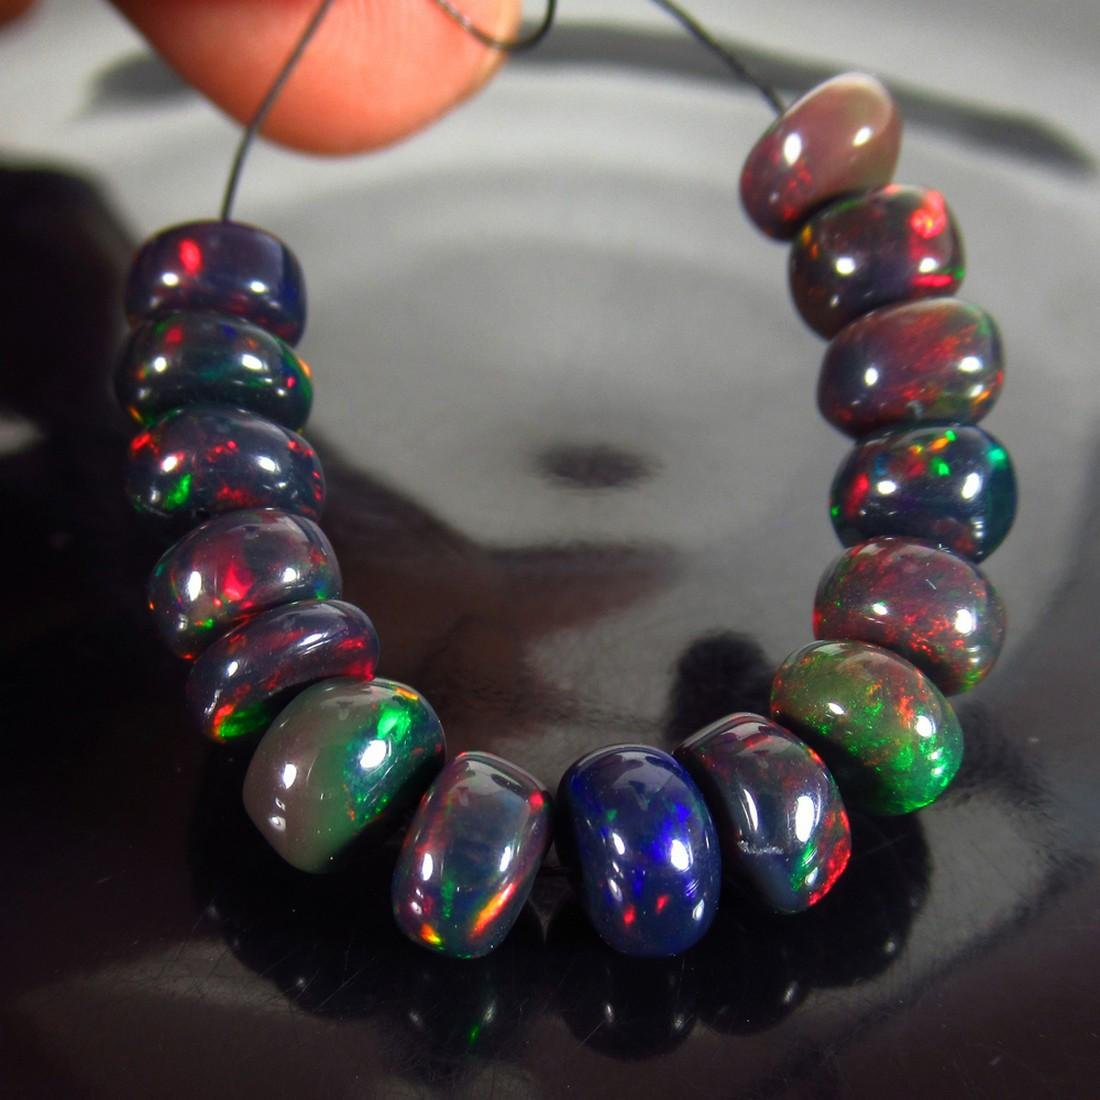 15.67 Ct Genuine 15 Drilled Round Fire Black Opal Beads